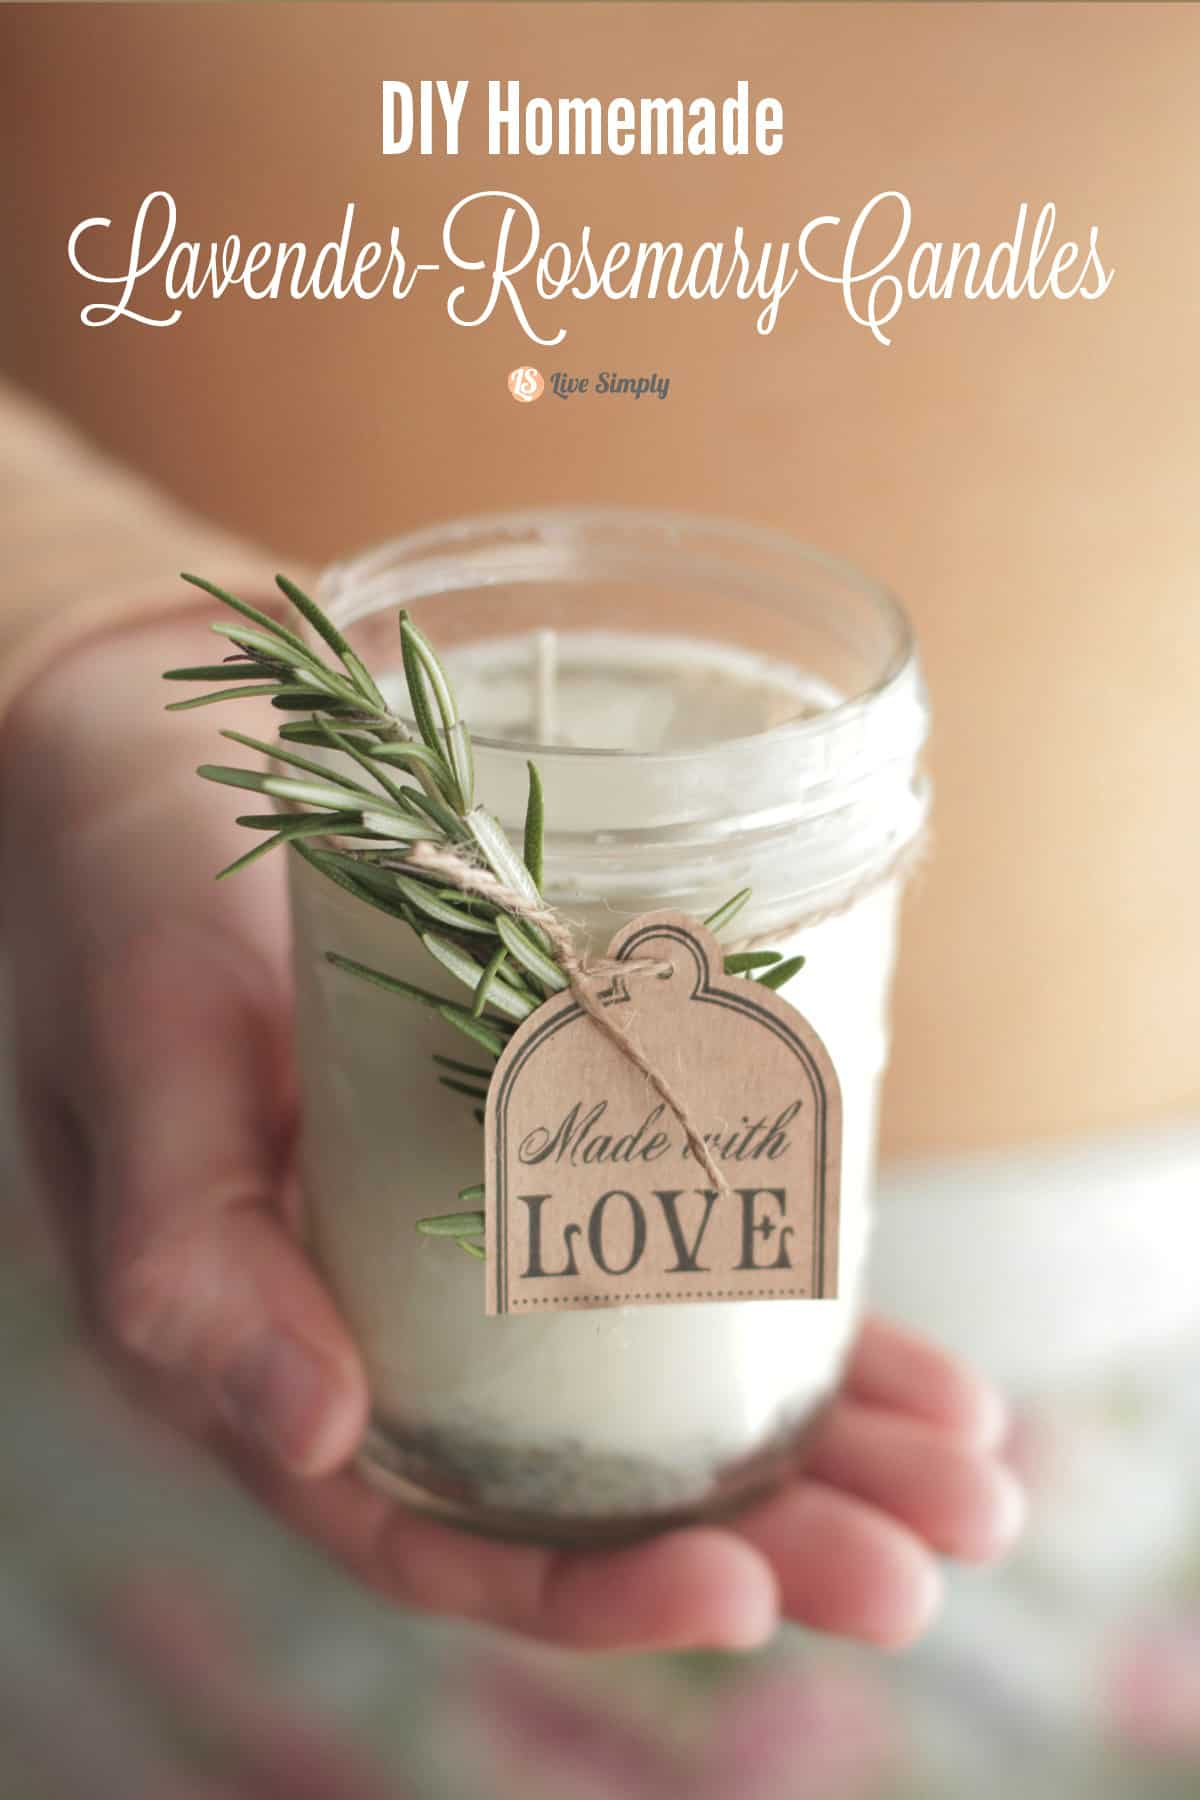 DIY rosemary lavender candle